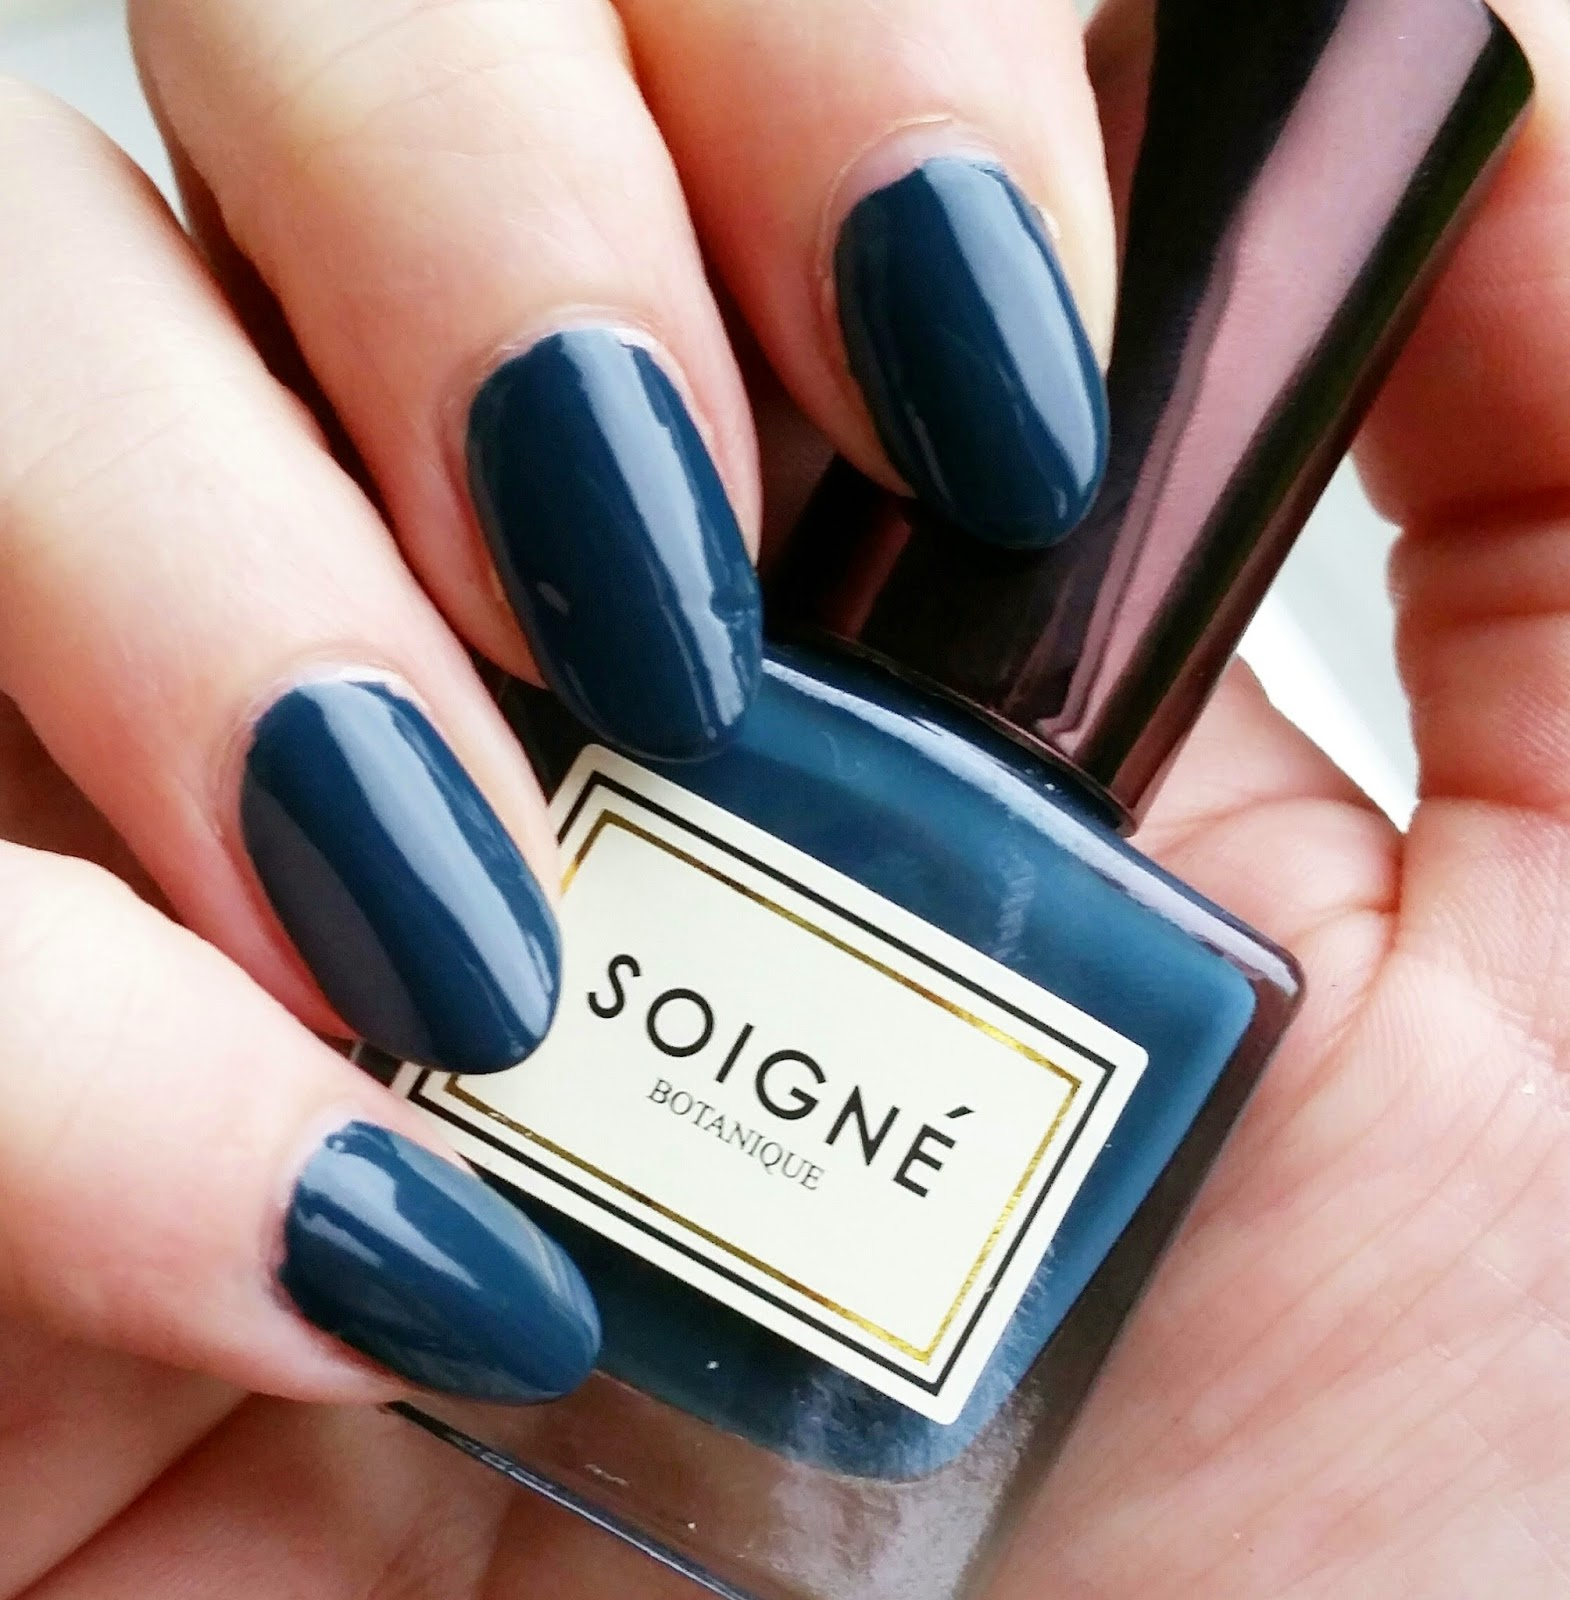 Soigne Plant-Based Nail Polish in Bleuet